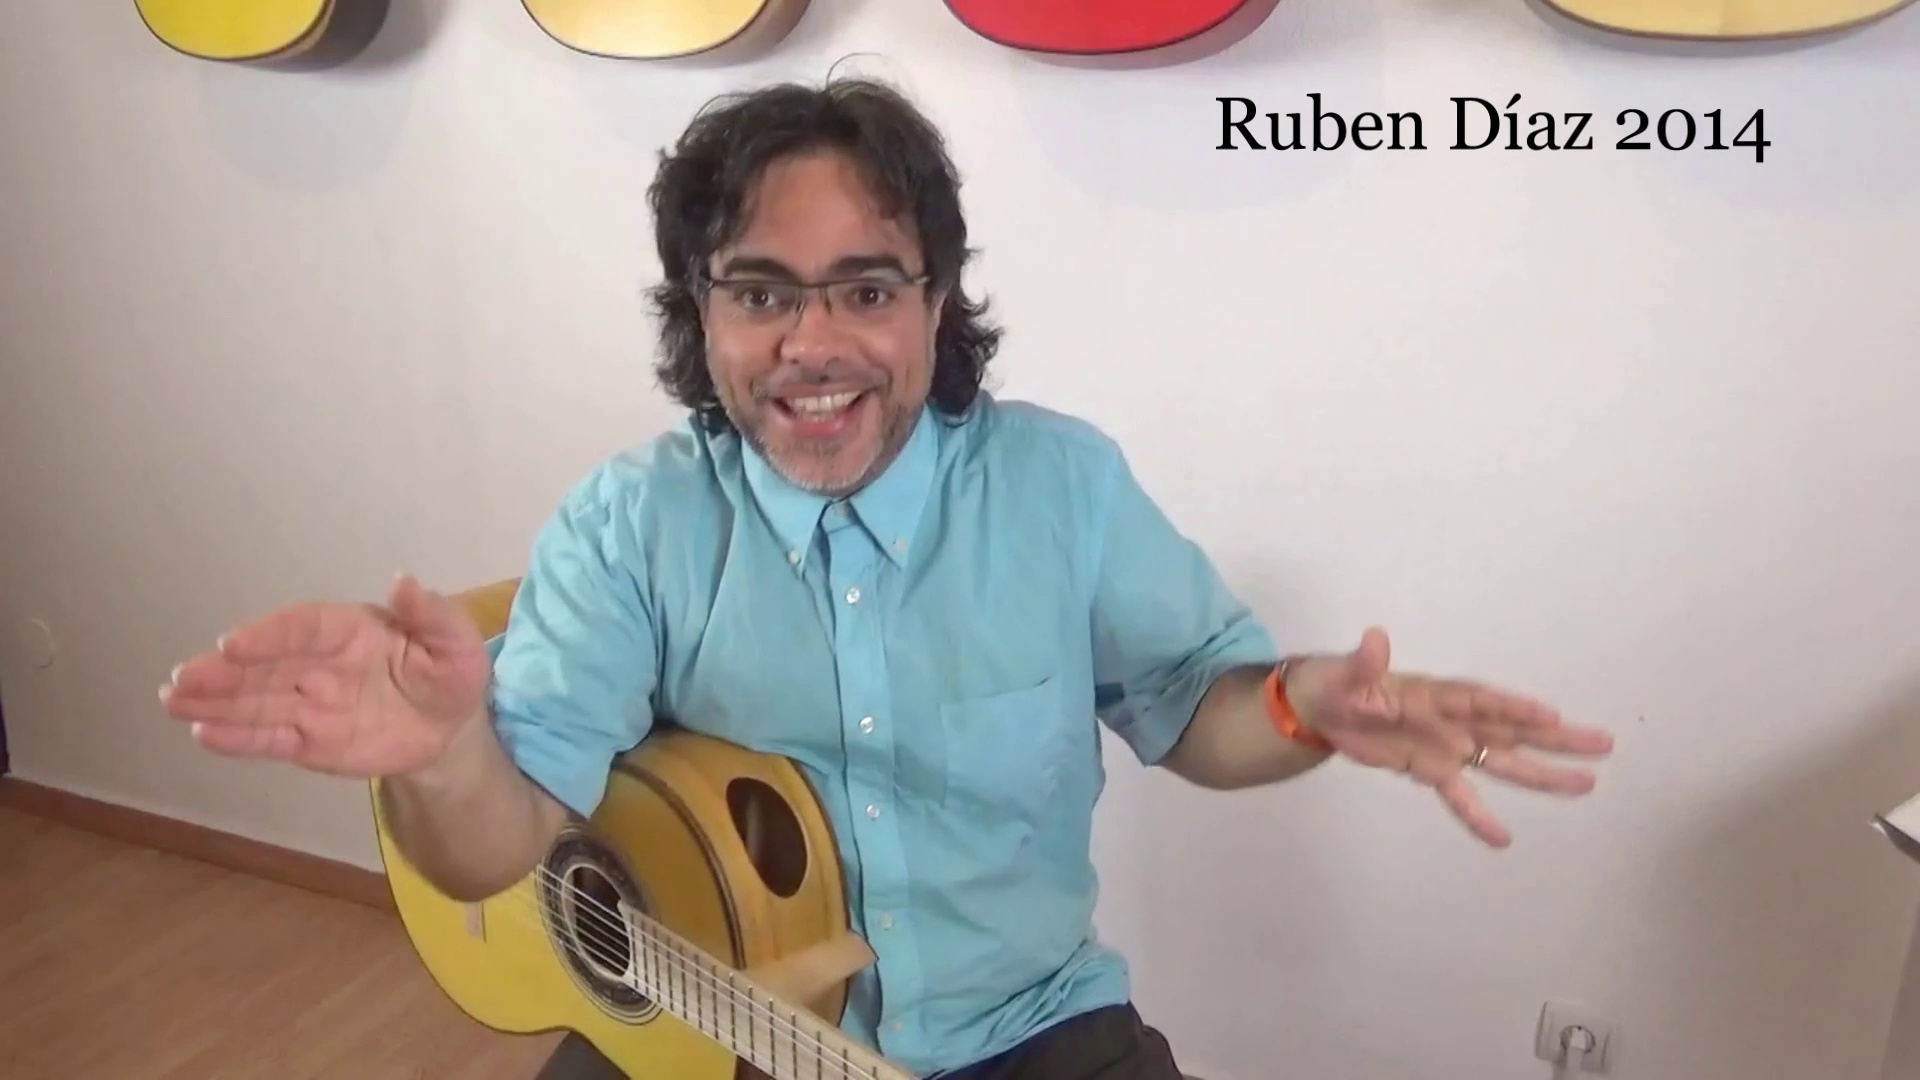 What About Your Skype Flamenco Method..?/ Ruben Diaz Modern Guitar Lessons Paco de Lucia's Technique  and Style / Learn Flamenco Guitar Online CFG / Modern Flamenco Online + 1,300 Video Lessons Available